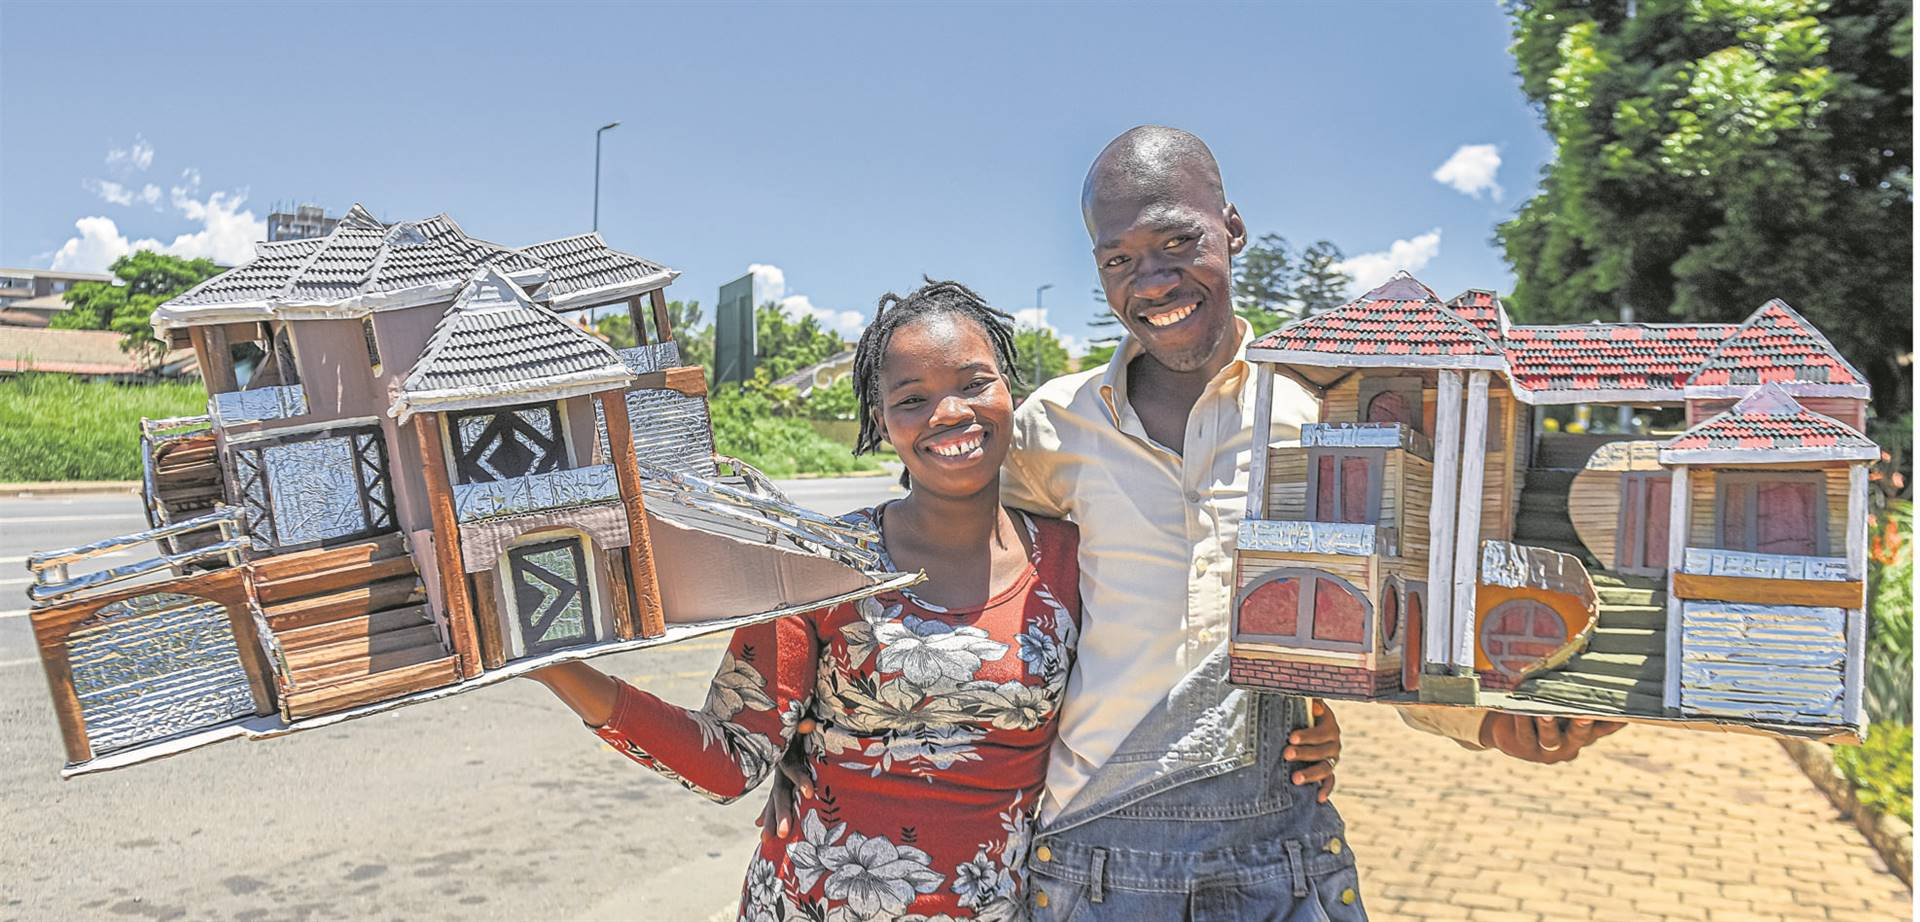 Mondli Mkhize and his wife Ayanda hold some of their model houses made from recycled rubbish.PHOTO: Moeketsi Mamane